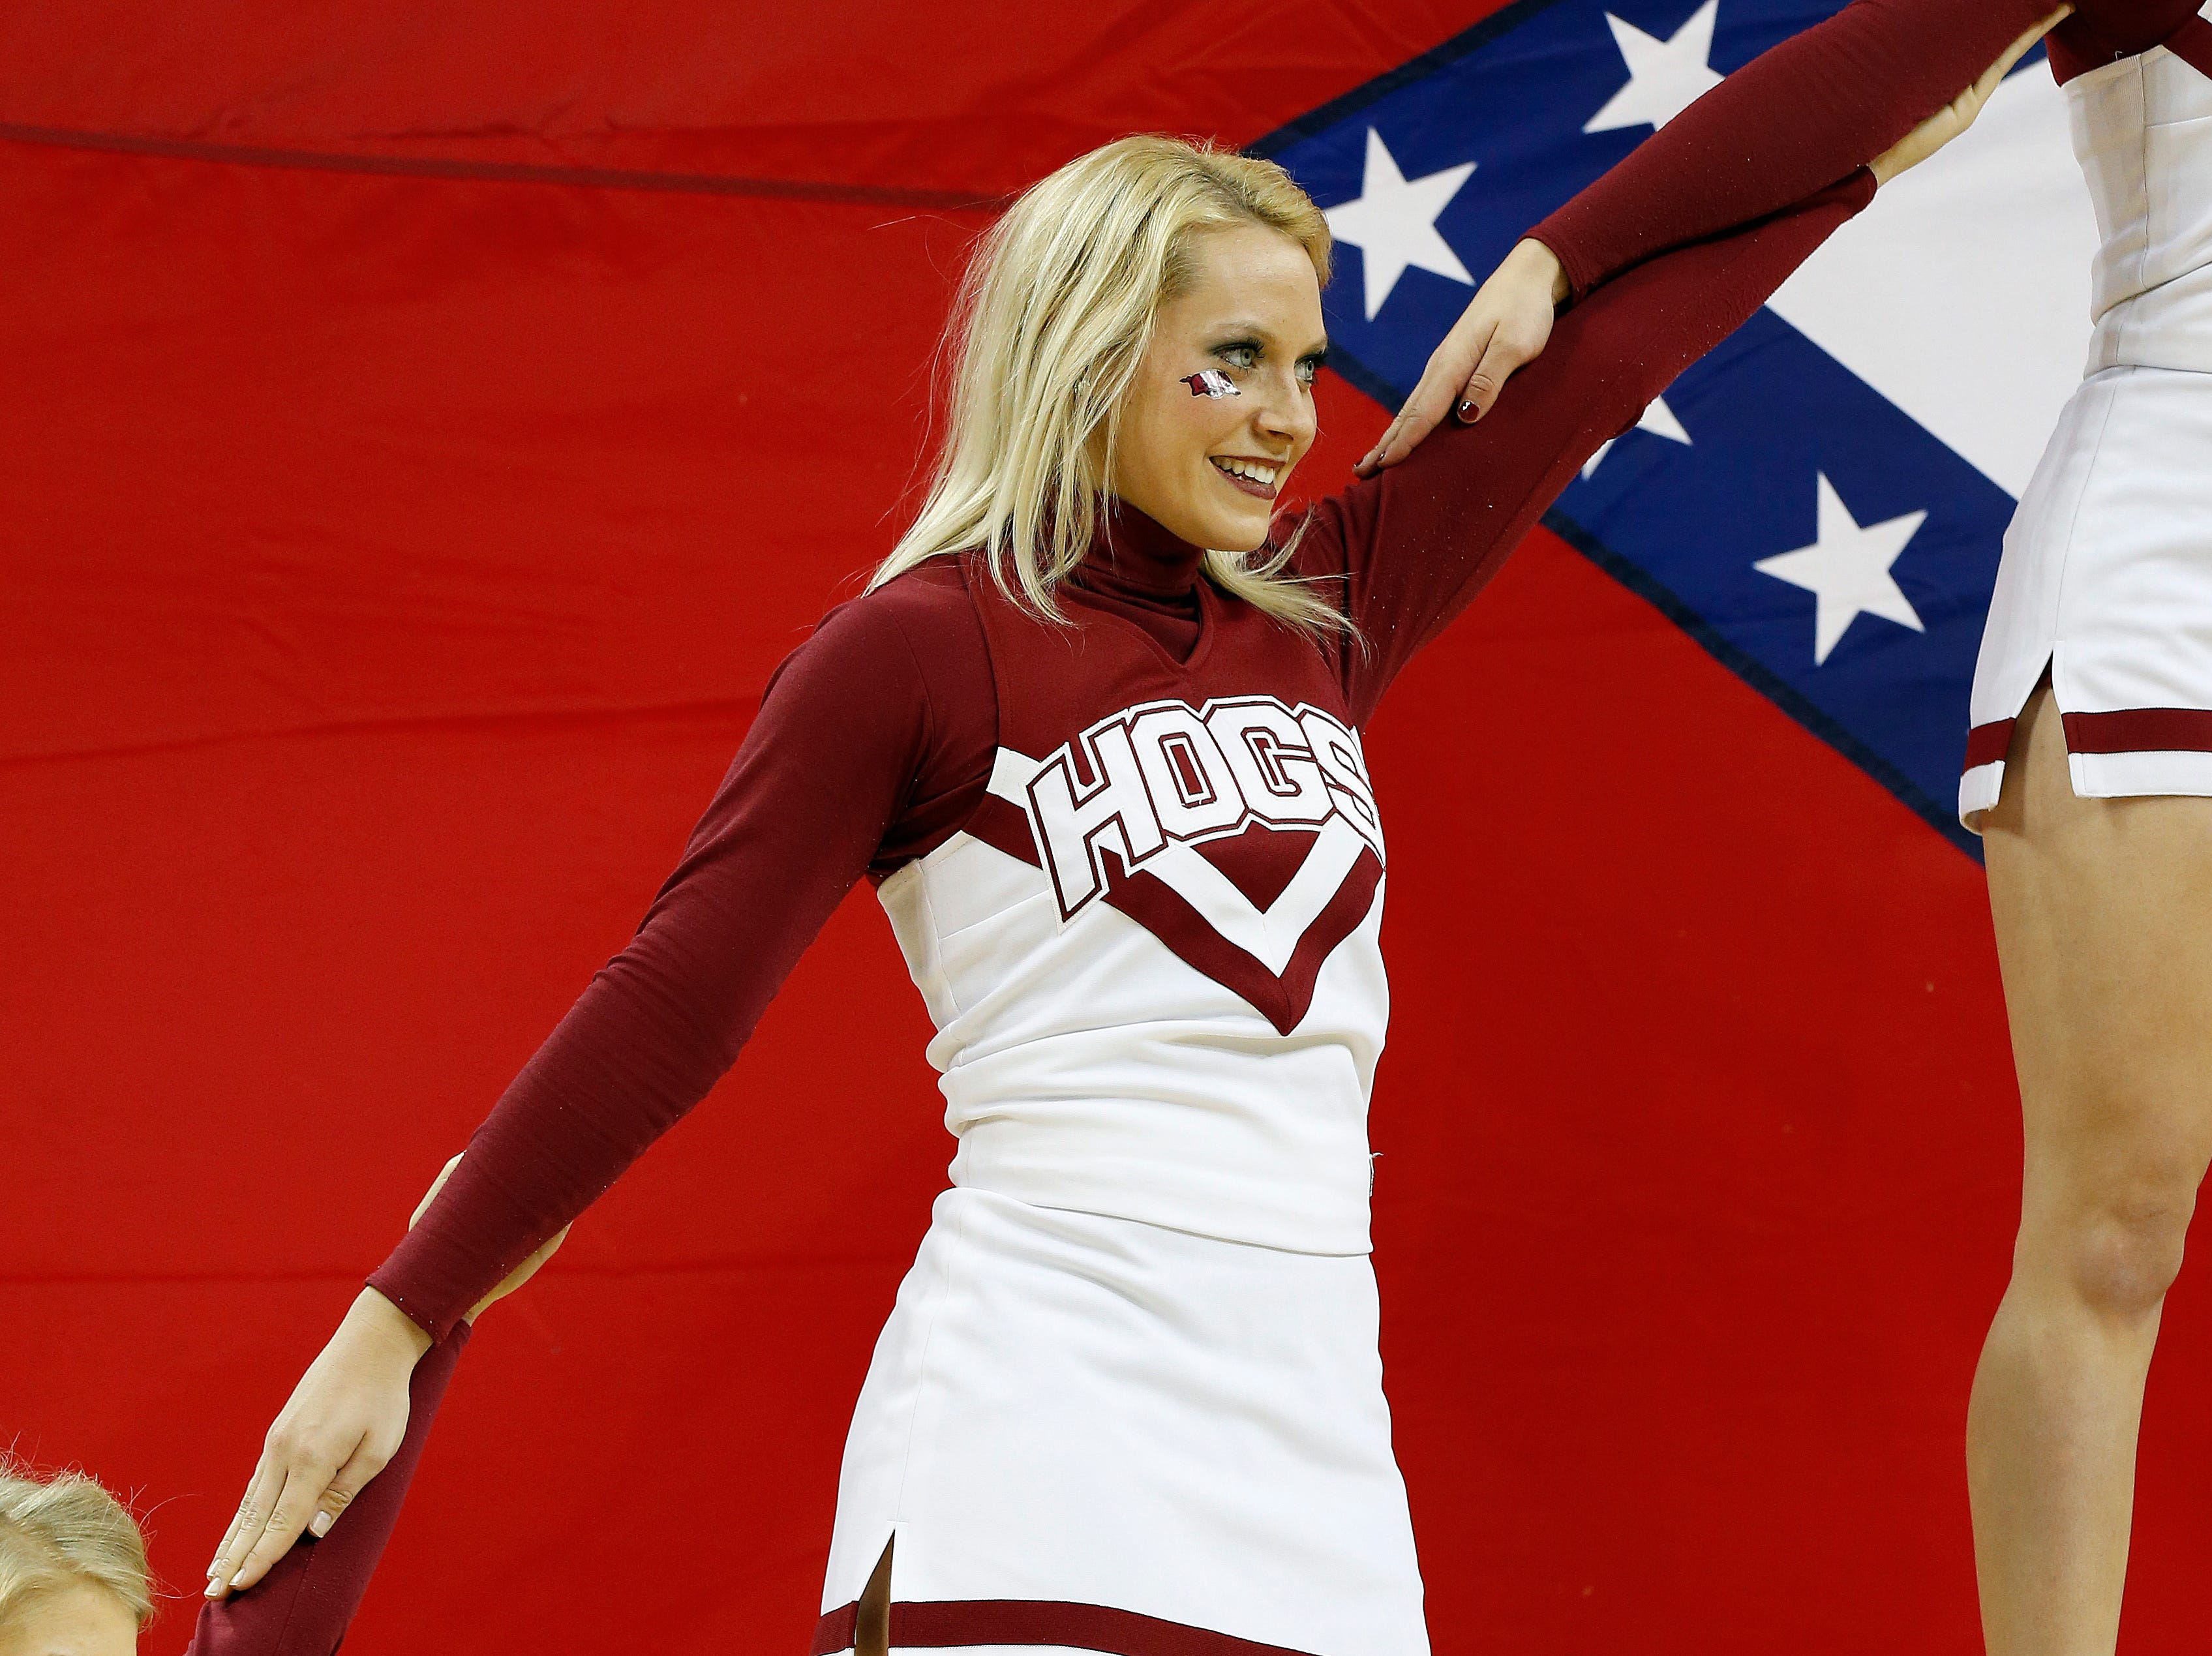 Arkansas cheerleaders preform in the first half of a first-round women's Southeastern Conference tournament NCAA college basketball game against Mississippi Wednesday, March 5, 2014, in Duluth, Ga.  Mississippi won 63-62. (AP Photo/John Bazemore